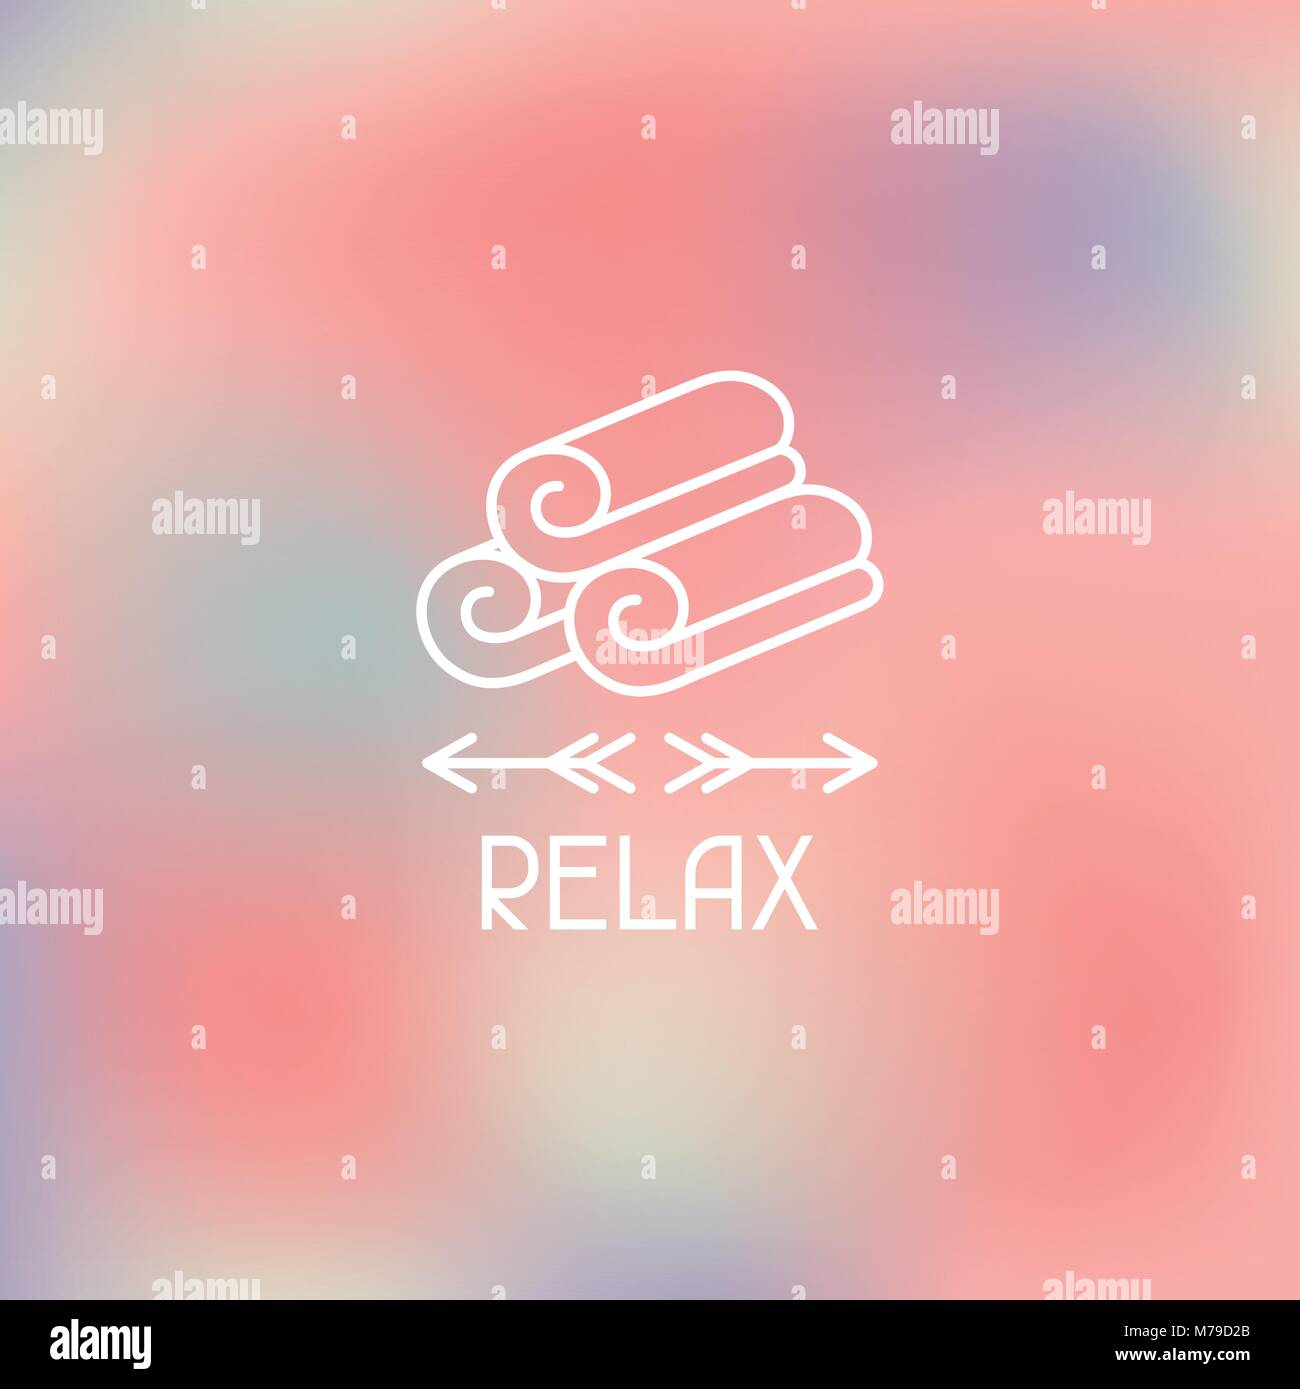 Spa relax label on blurred background - Stock Vector